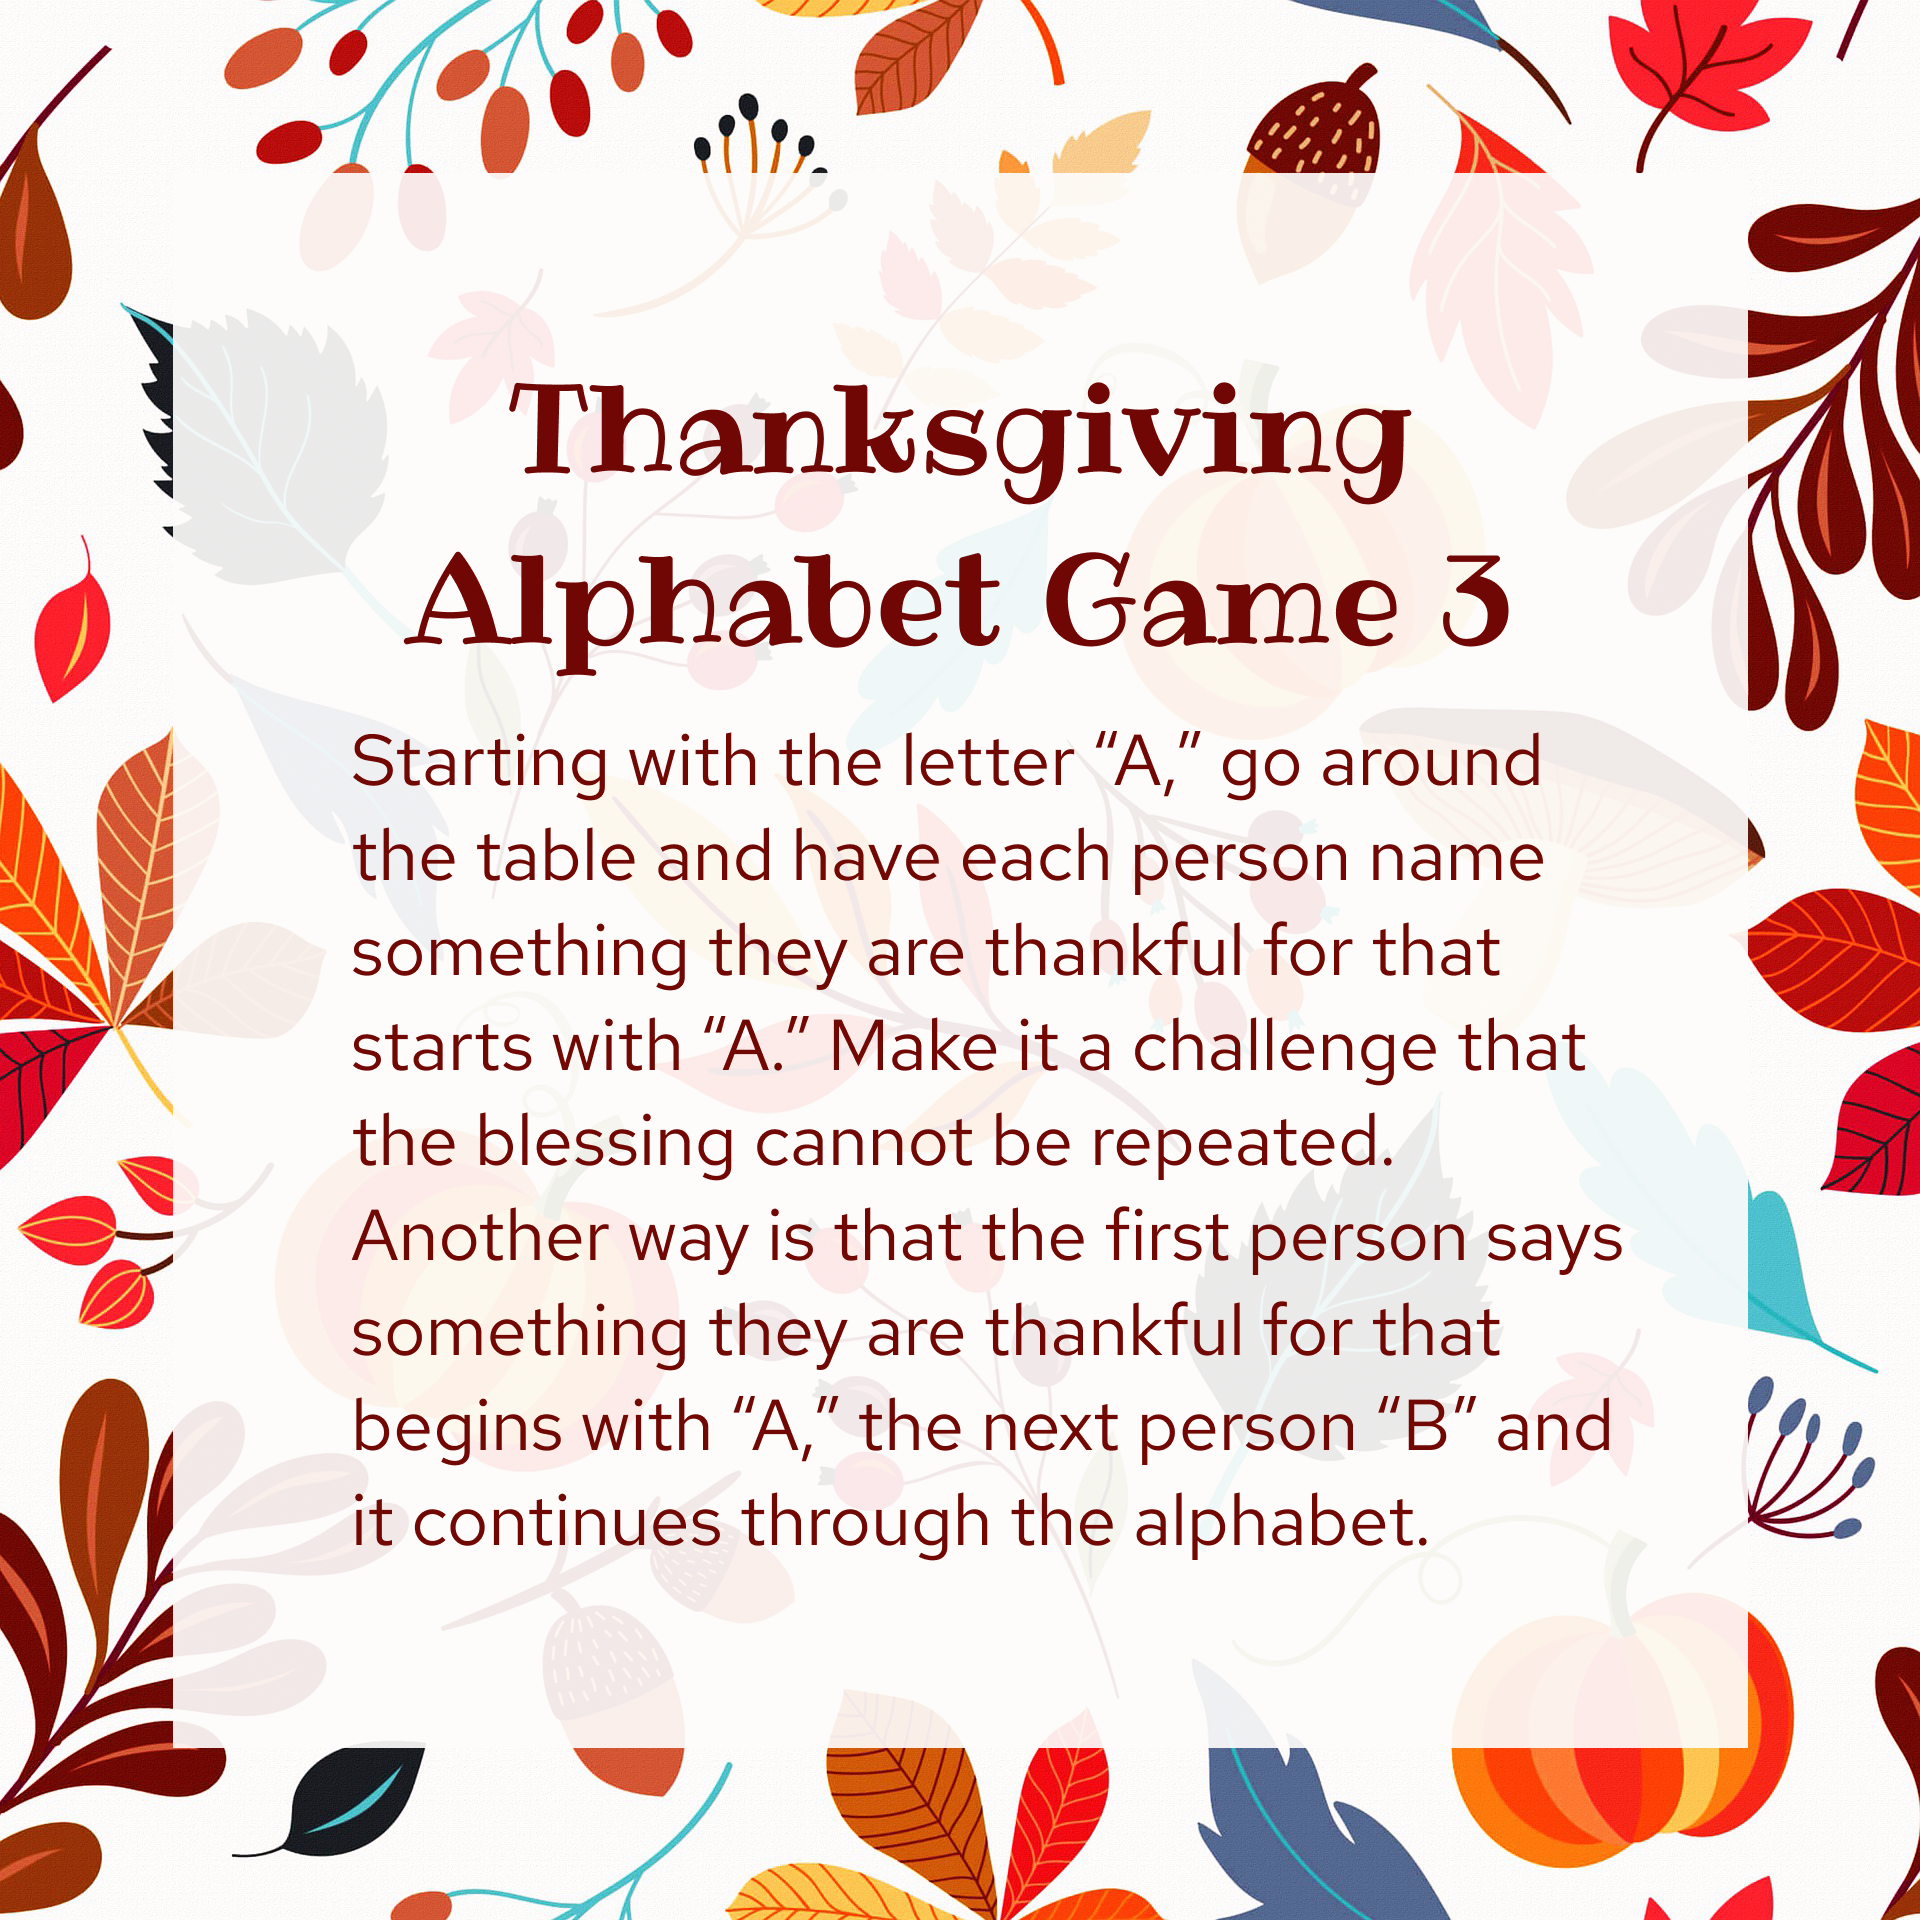 Thanksgiving Activities8.png